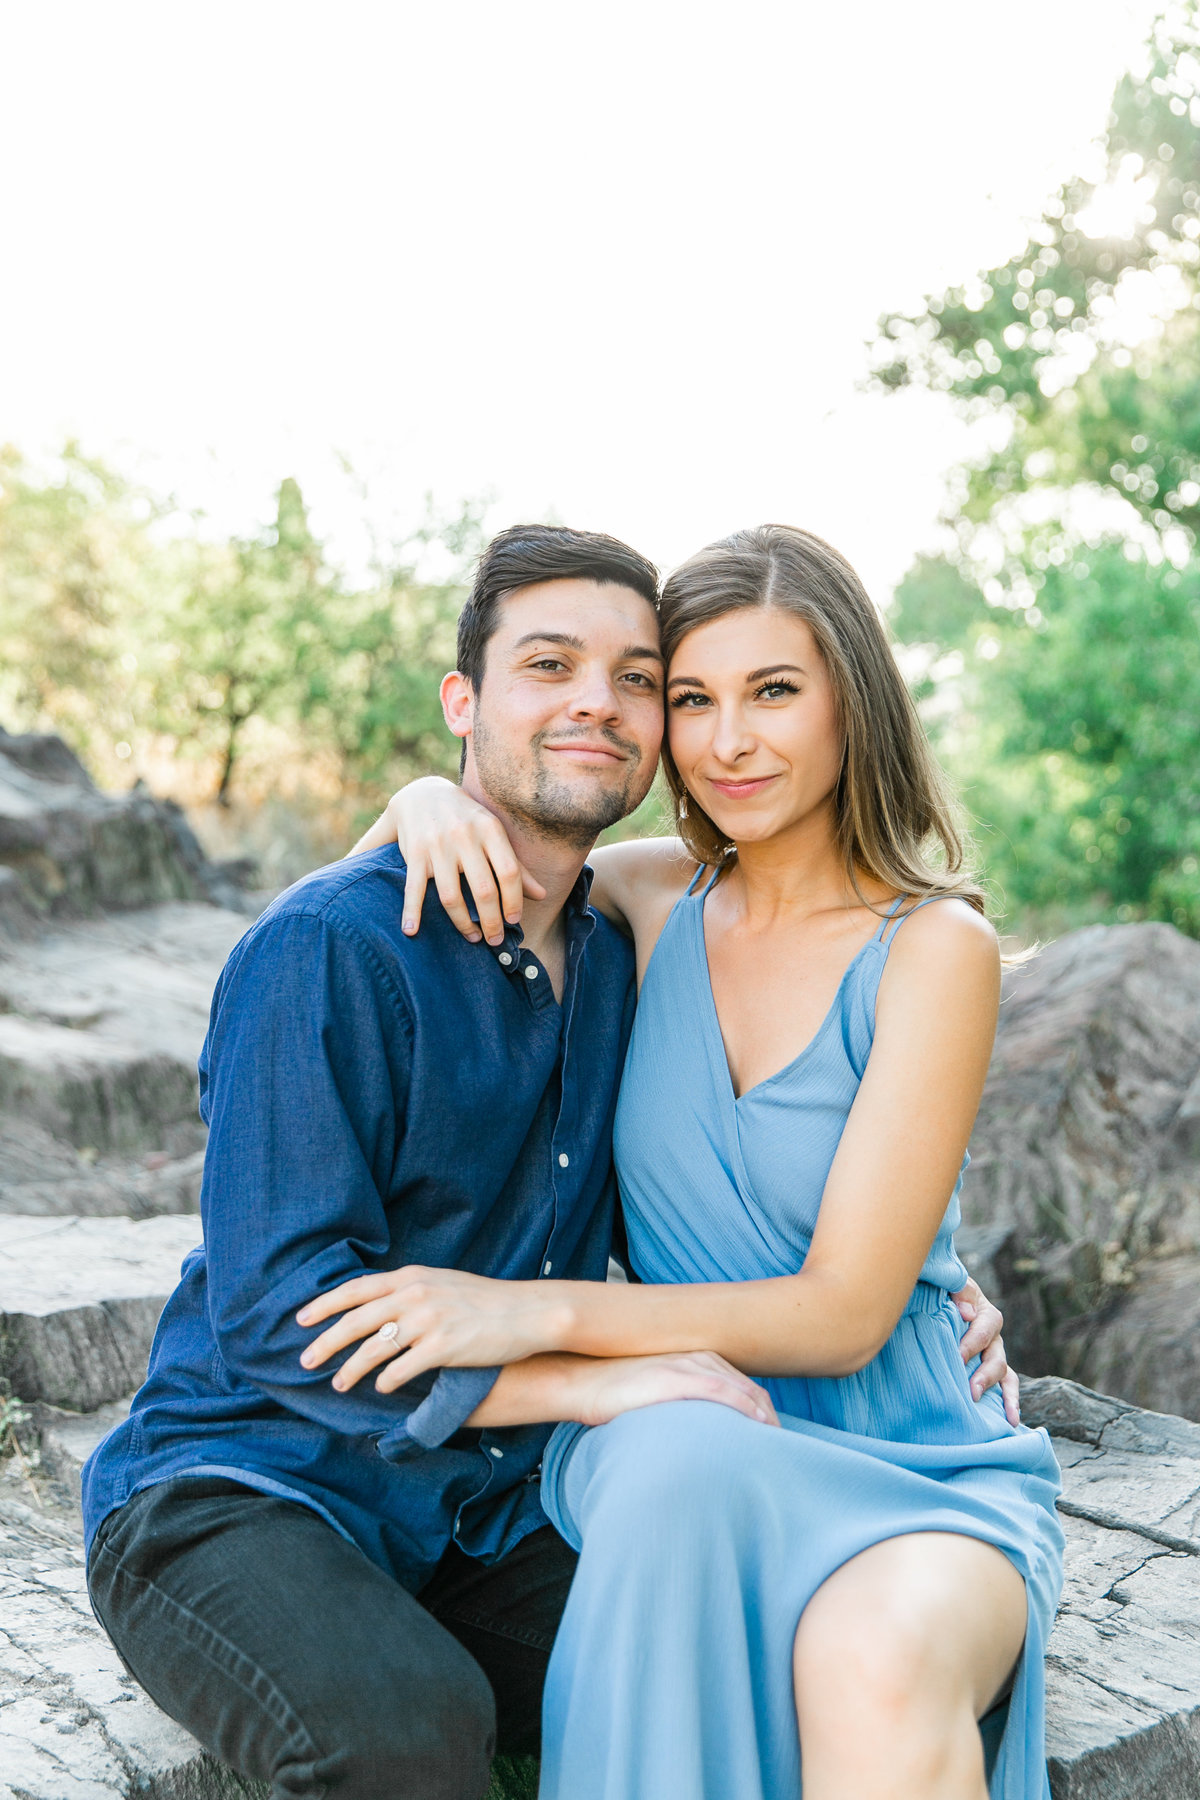 Karlie Colleen Photography - Arizona Desert Engagement - Brynne & Josh -35